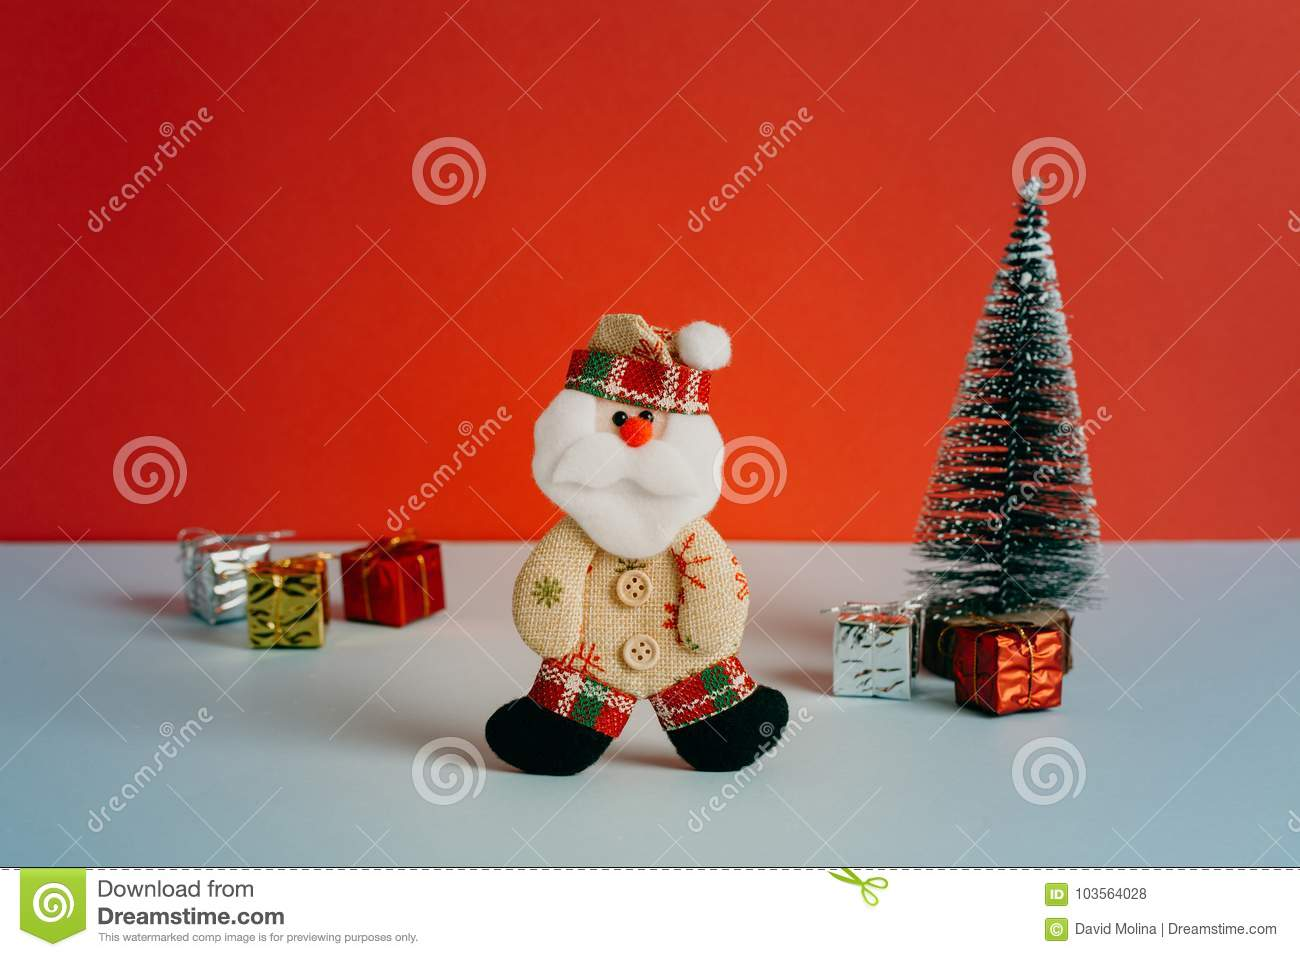 Cool Alternative Dressed Santa Toy With Gifts And Christmas Tree ...